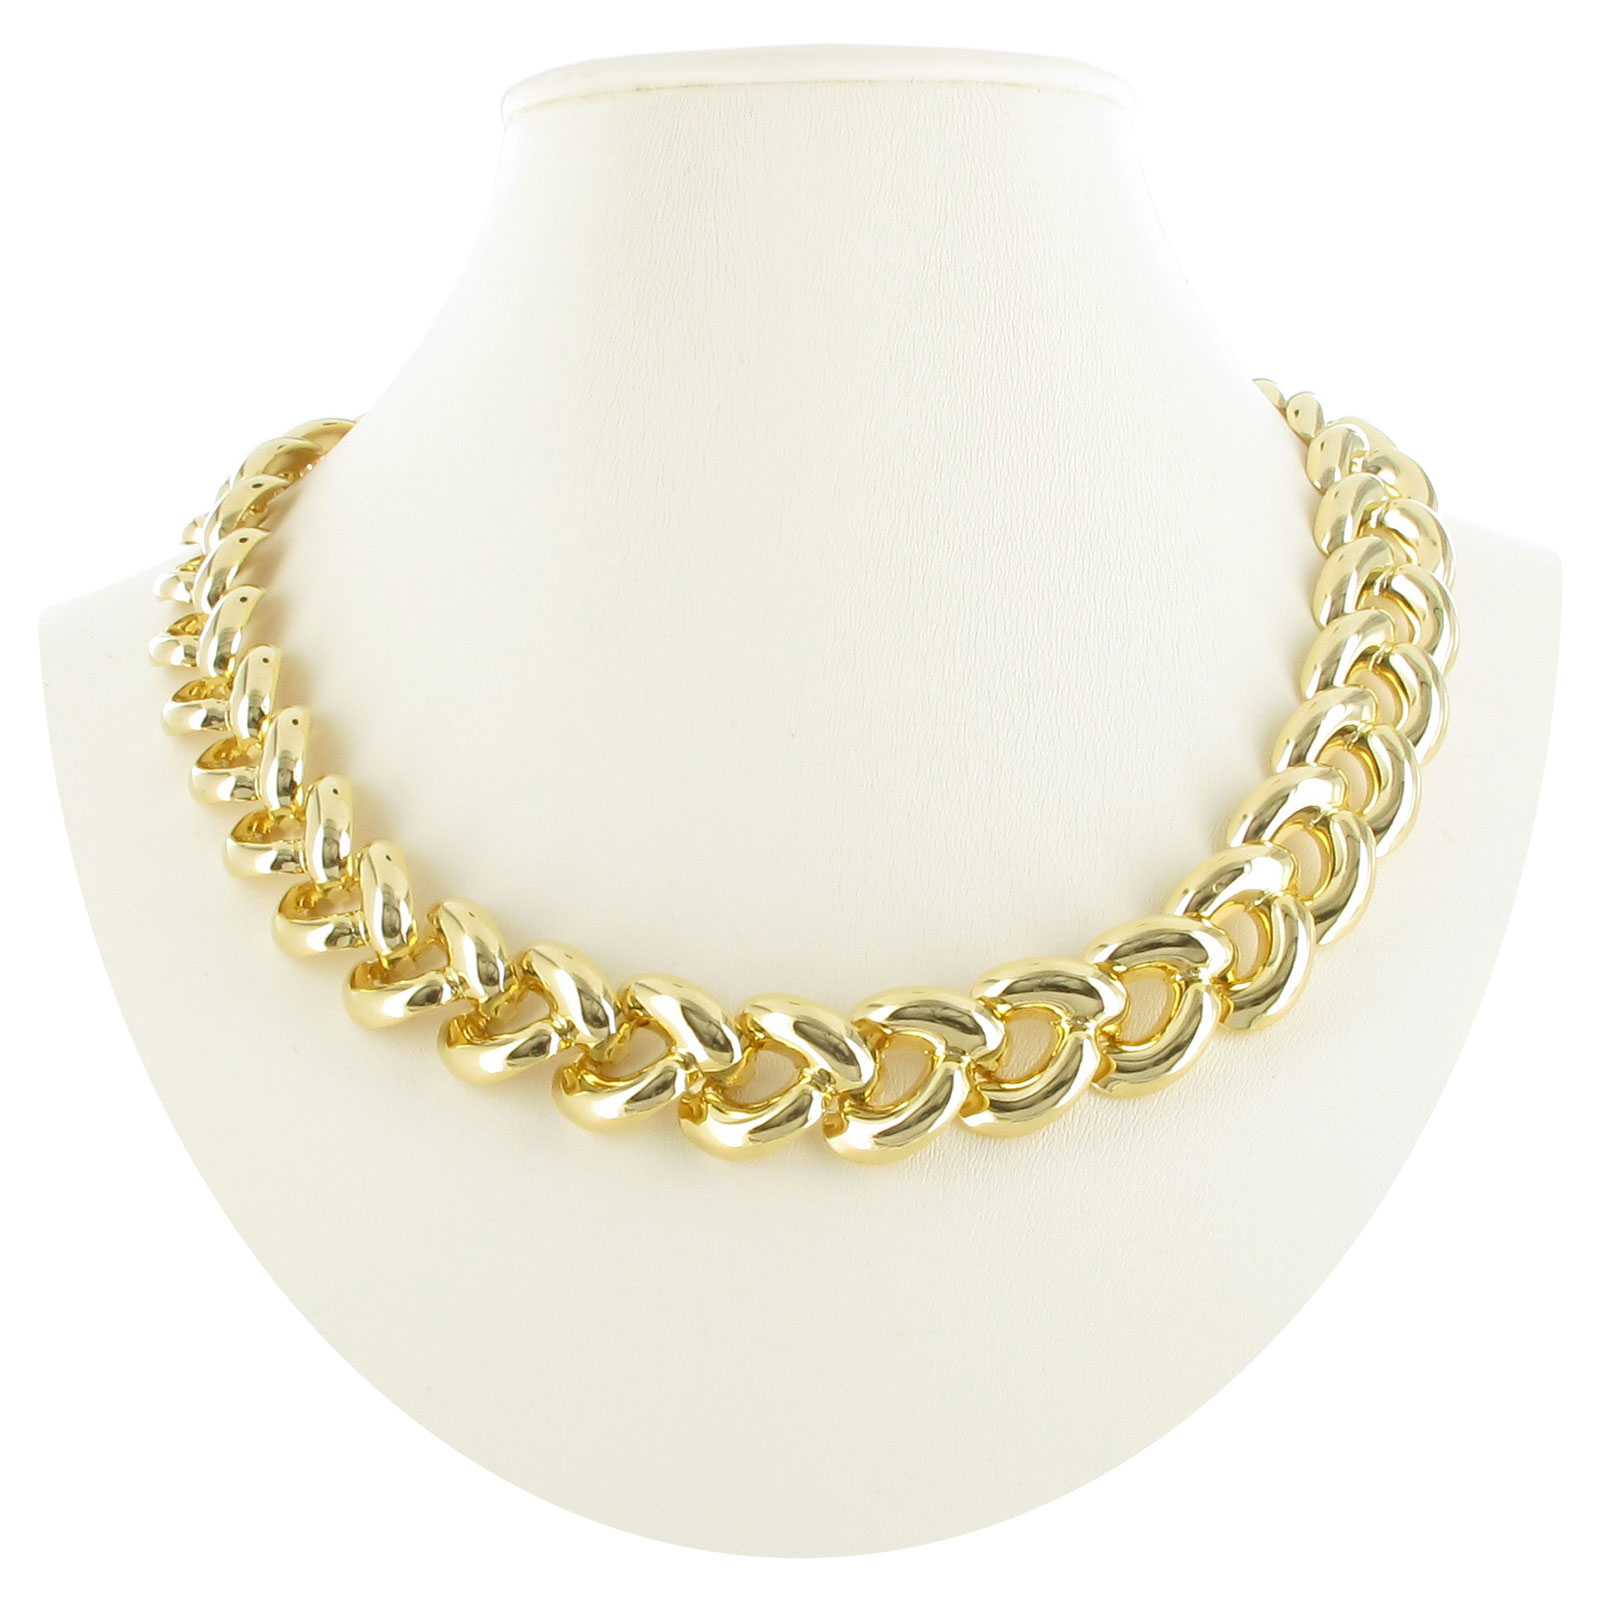 Vintage Gold Tone Chunky Curved Curb Link Collar Choker